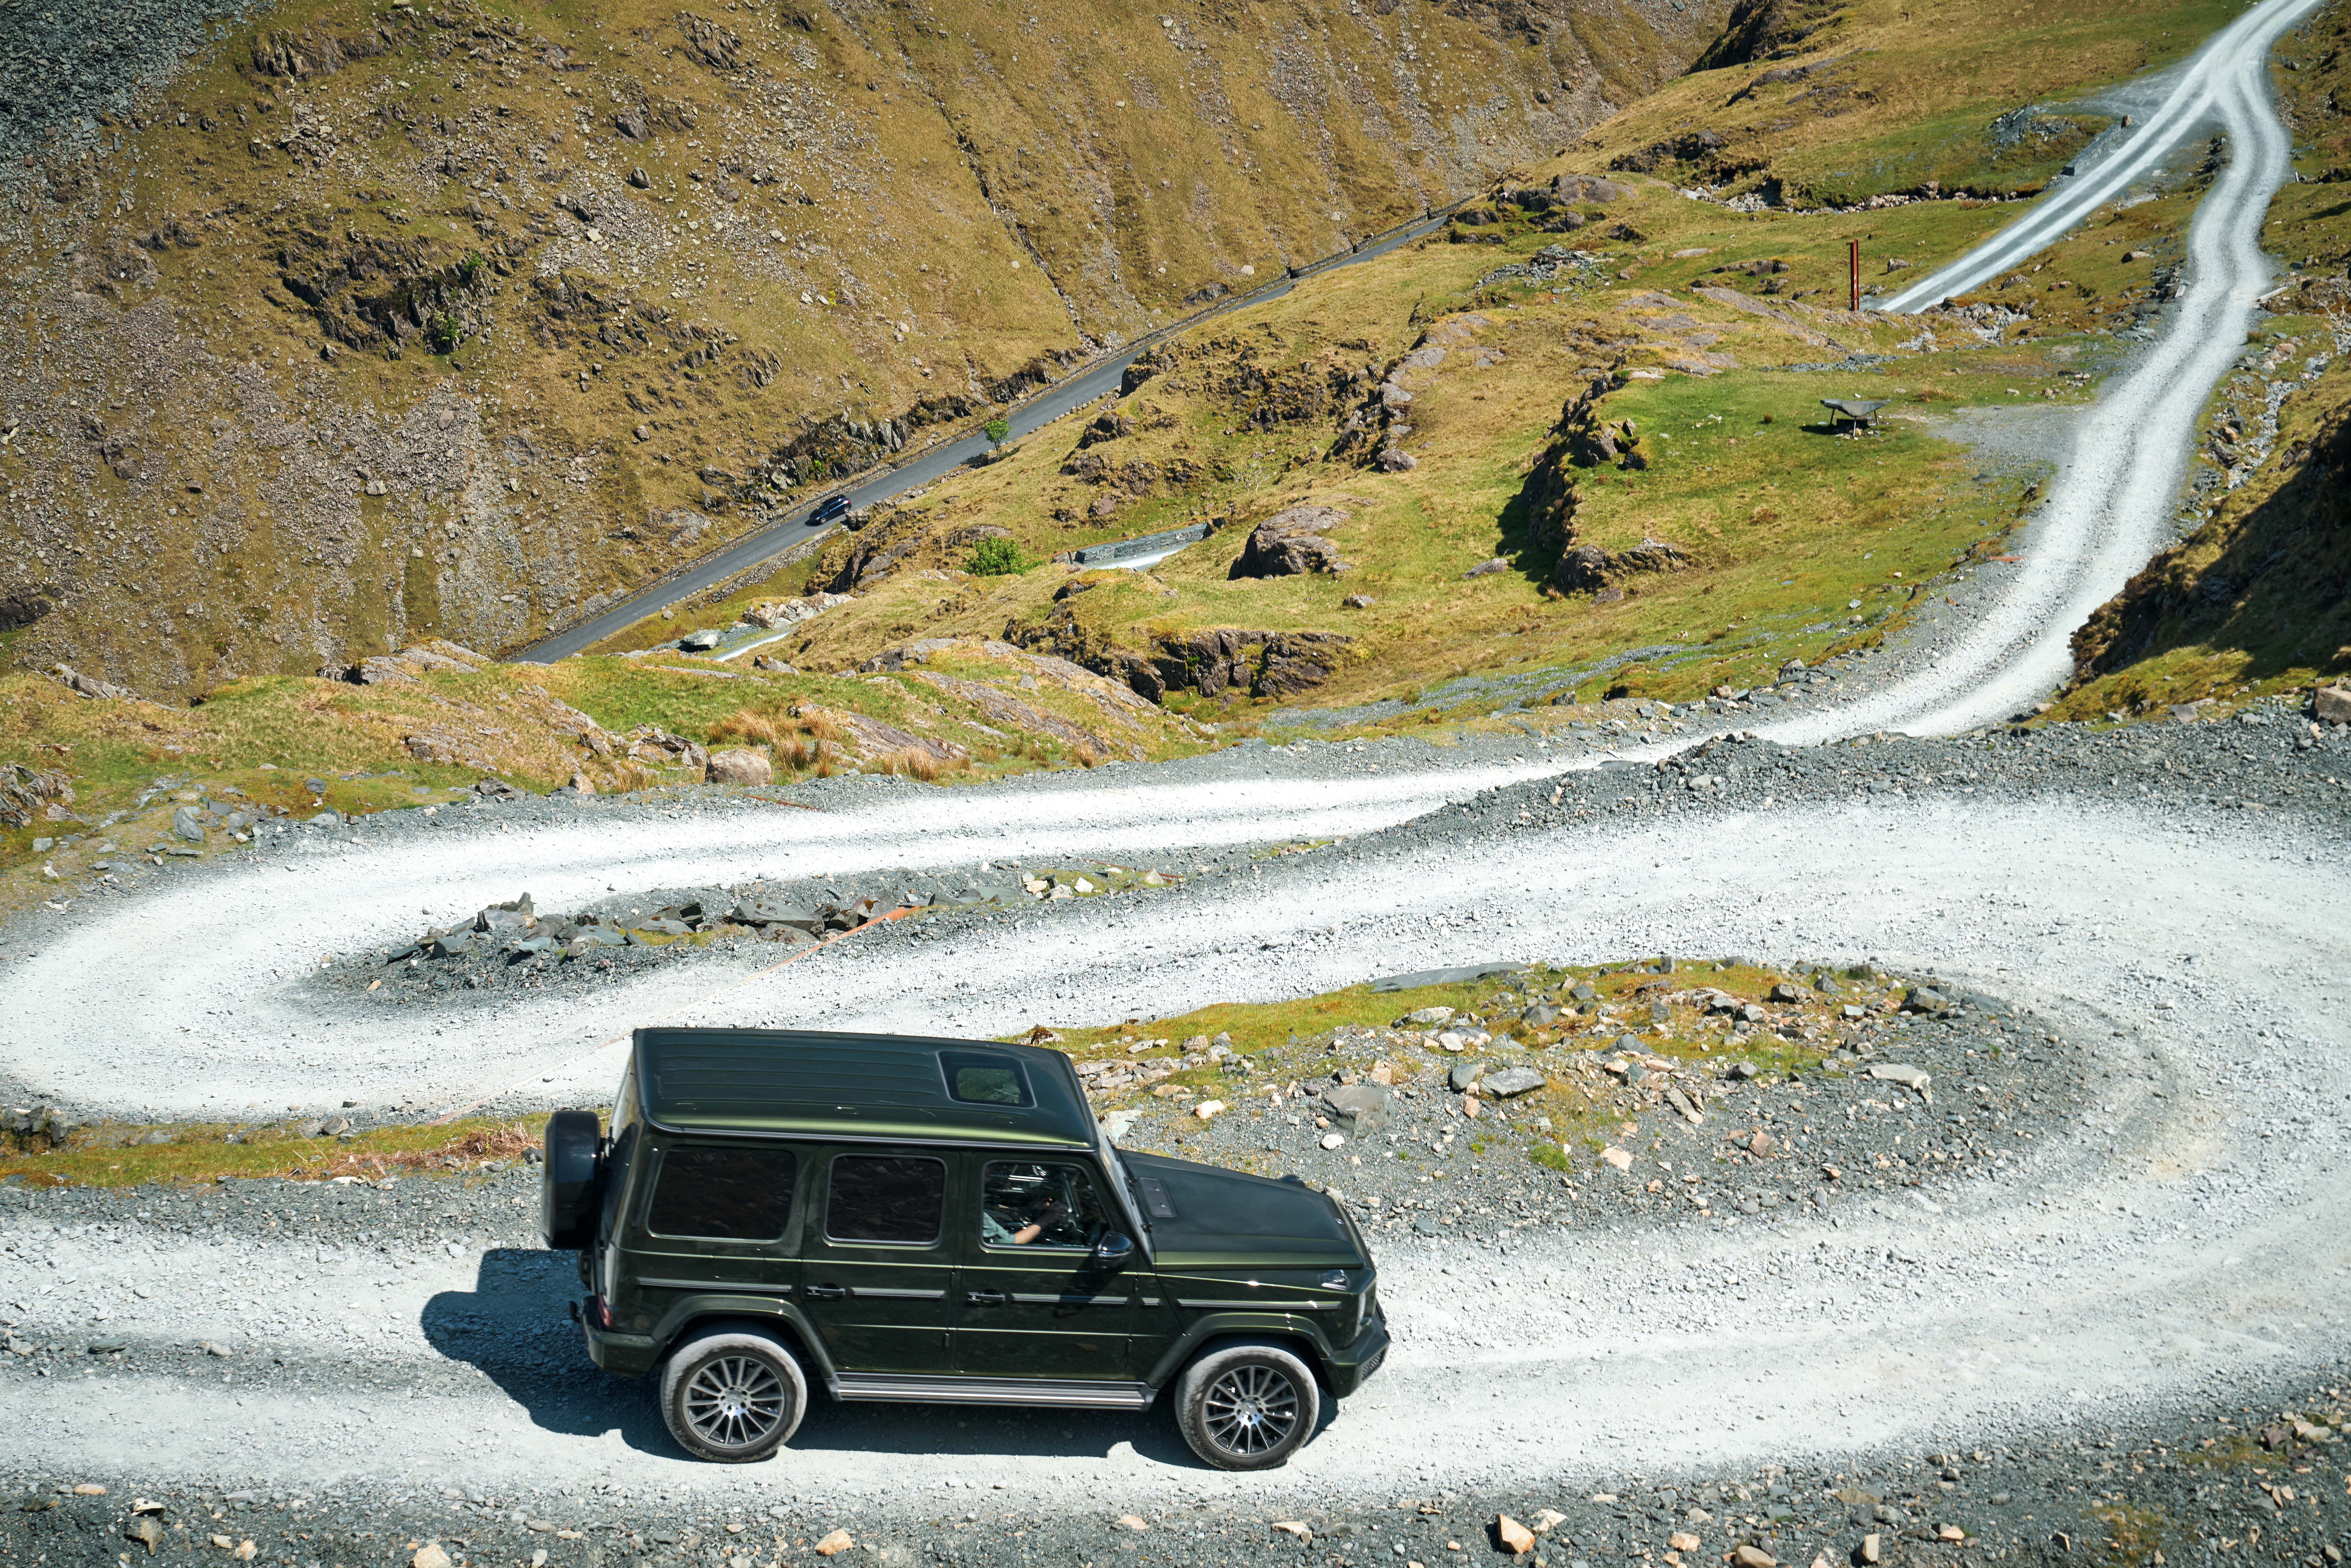 The G-Class is one of the best off-roaders on sale today